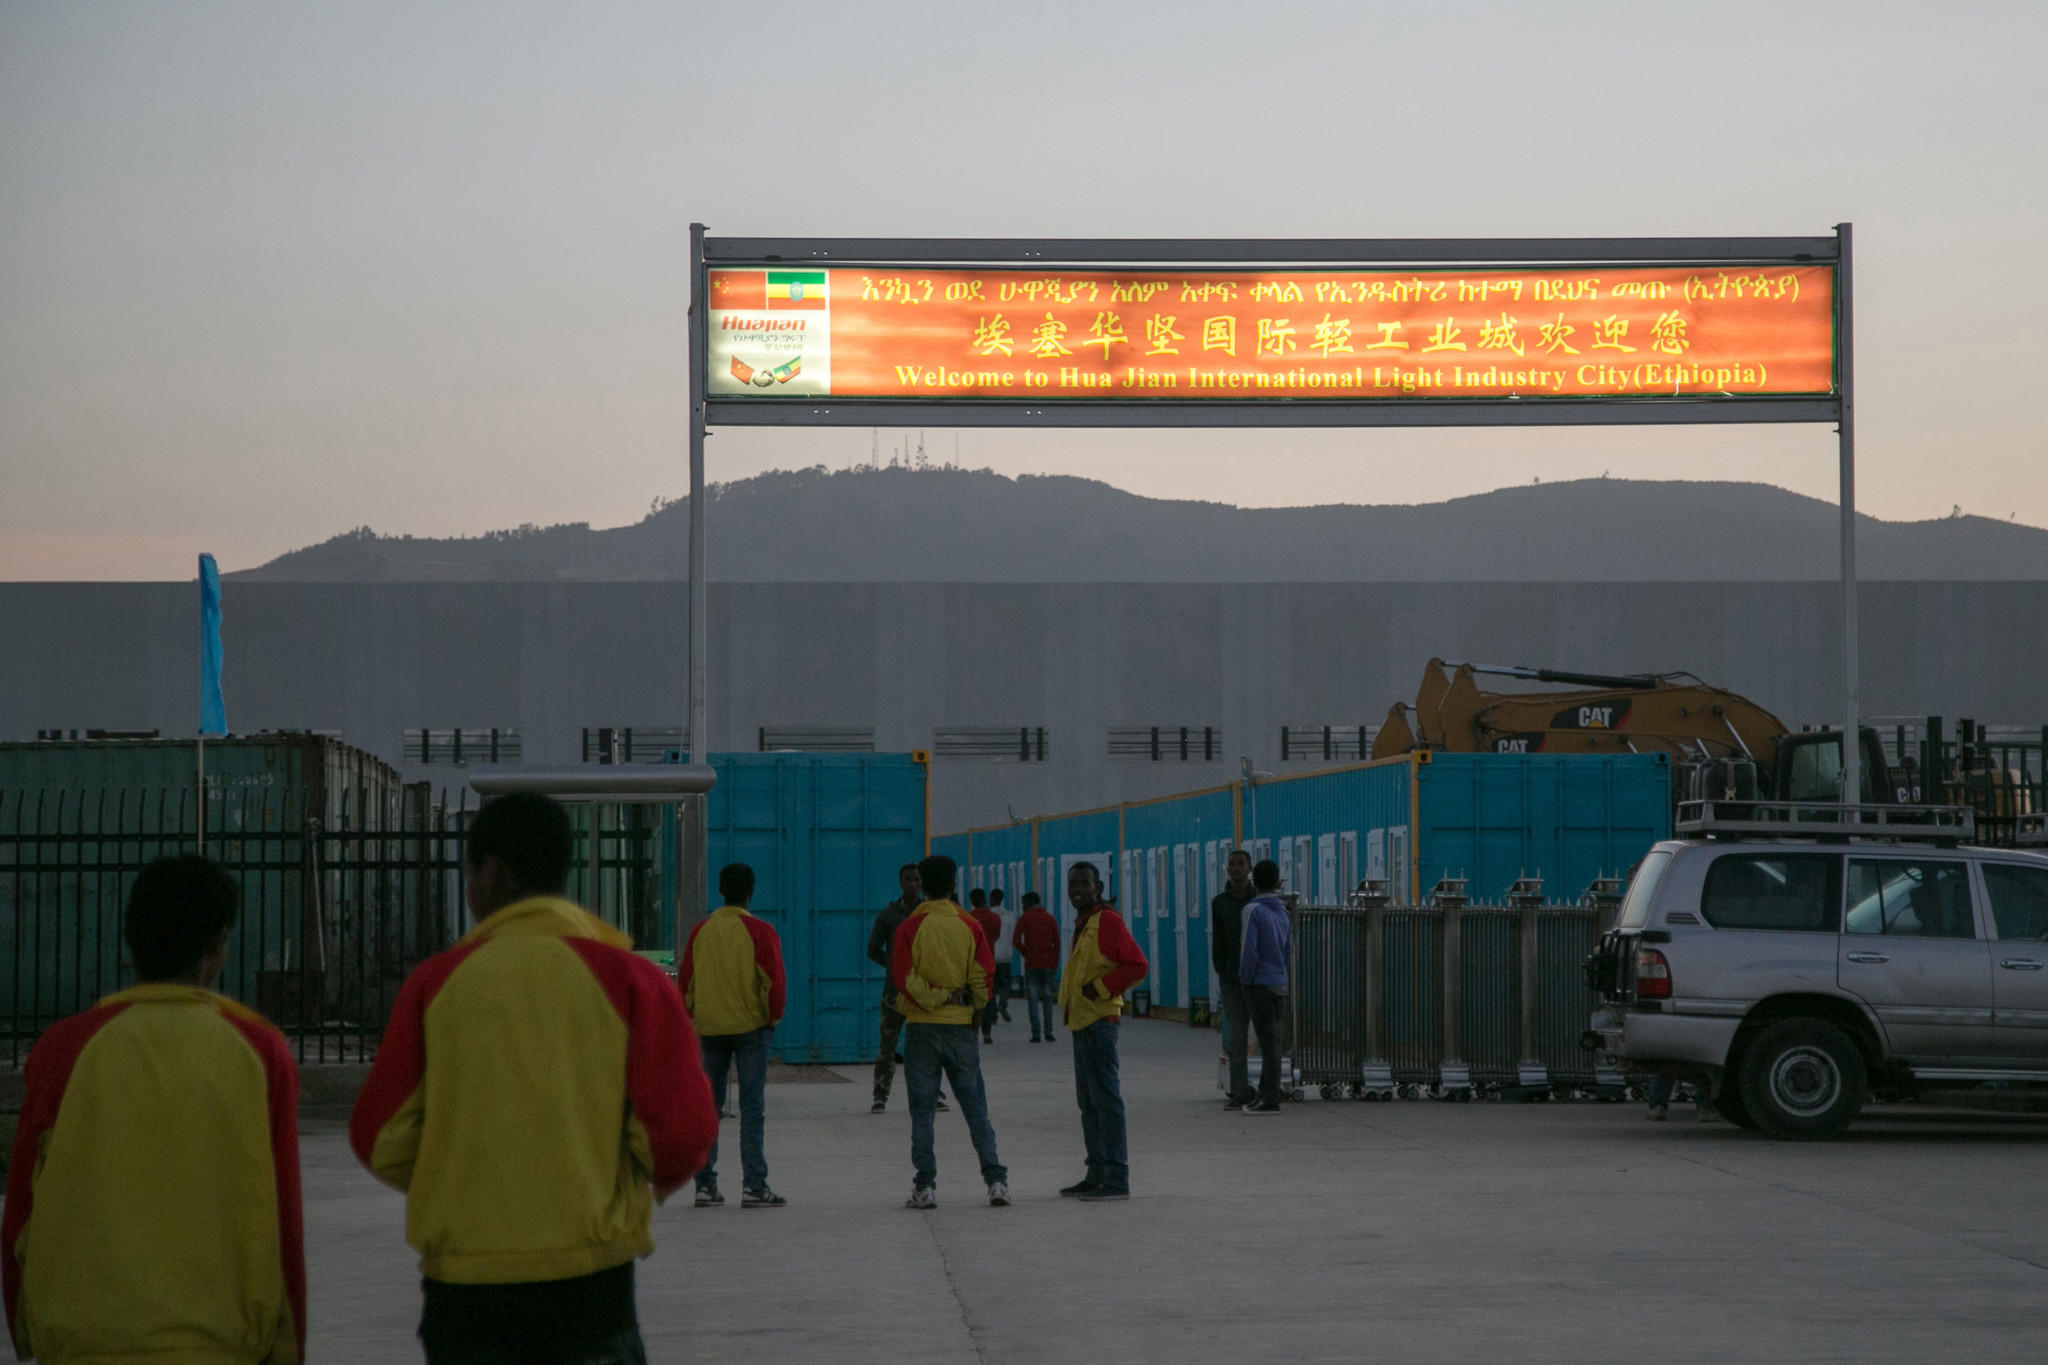 China says it built a railway in Africa out of altruism, but